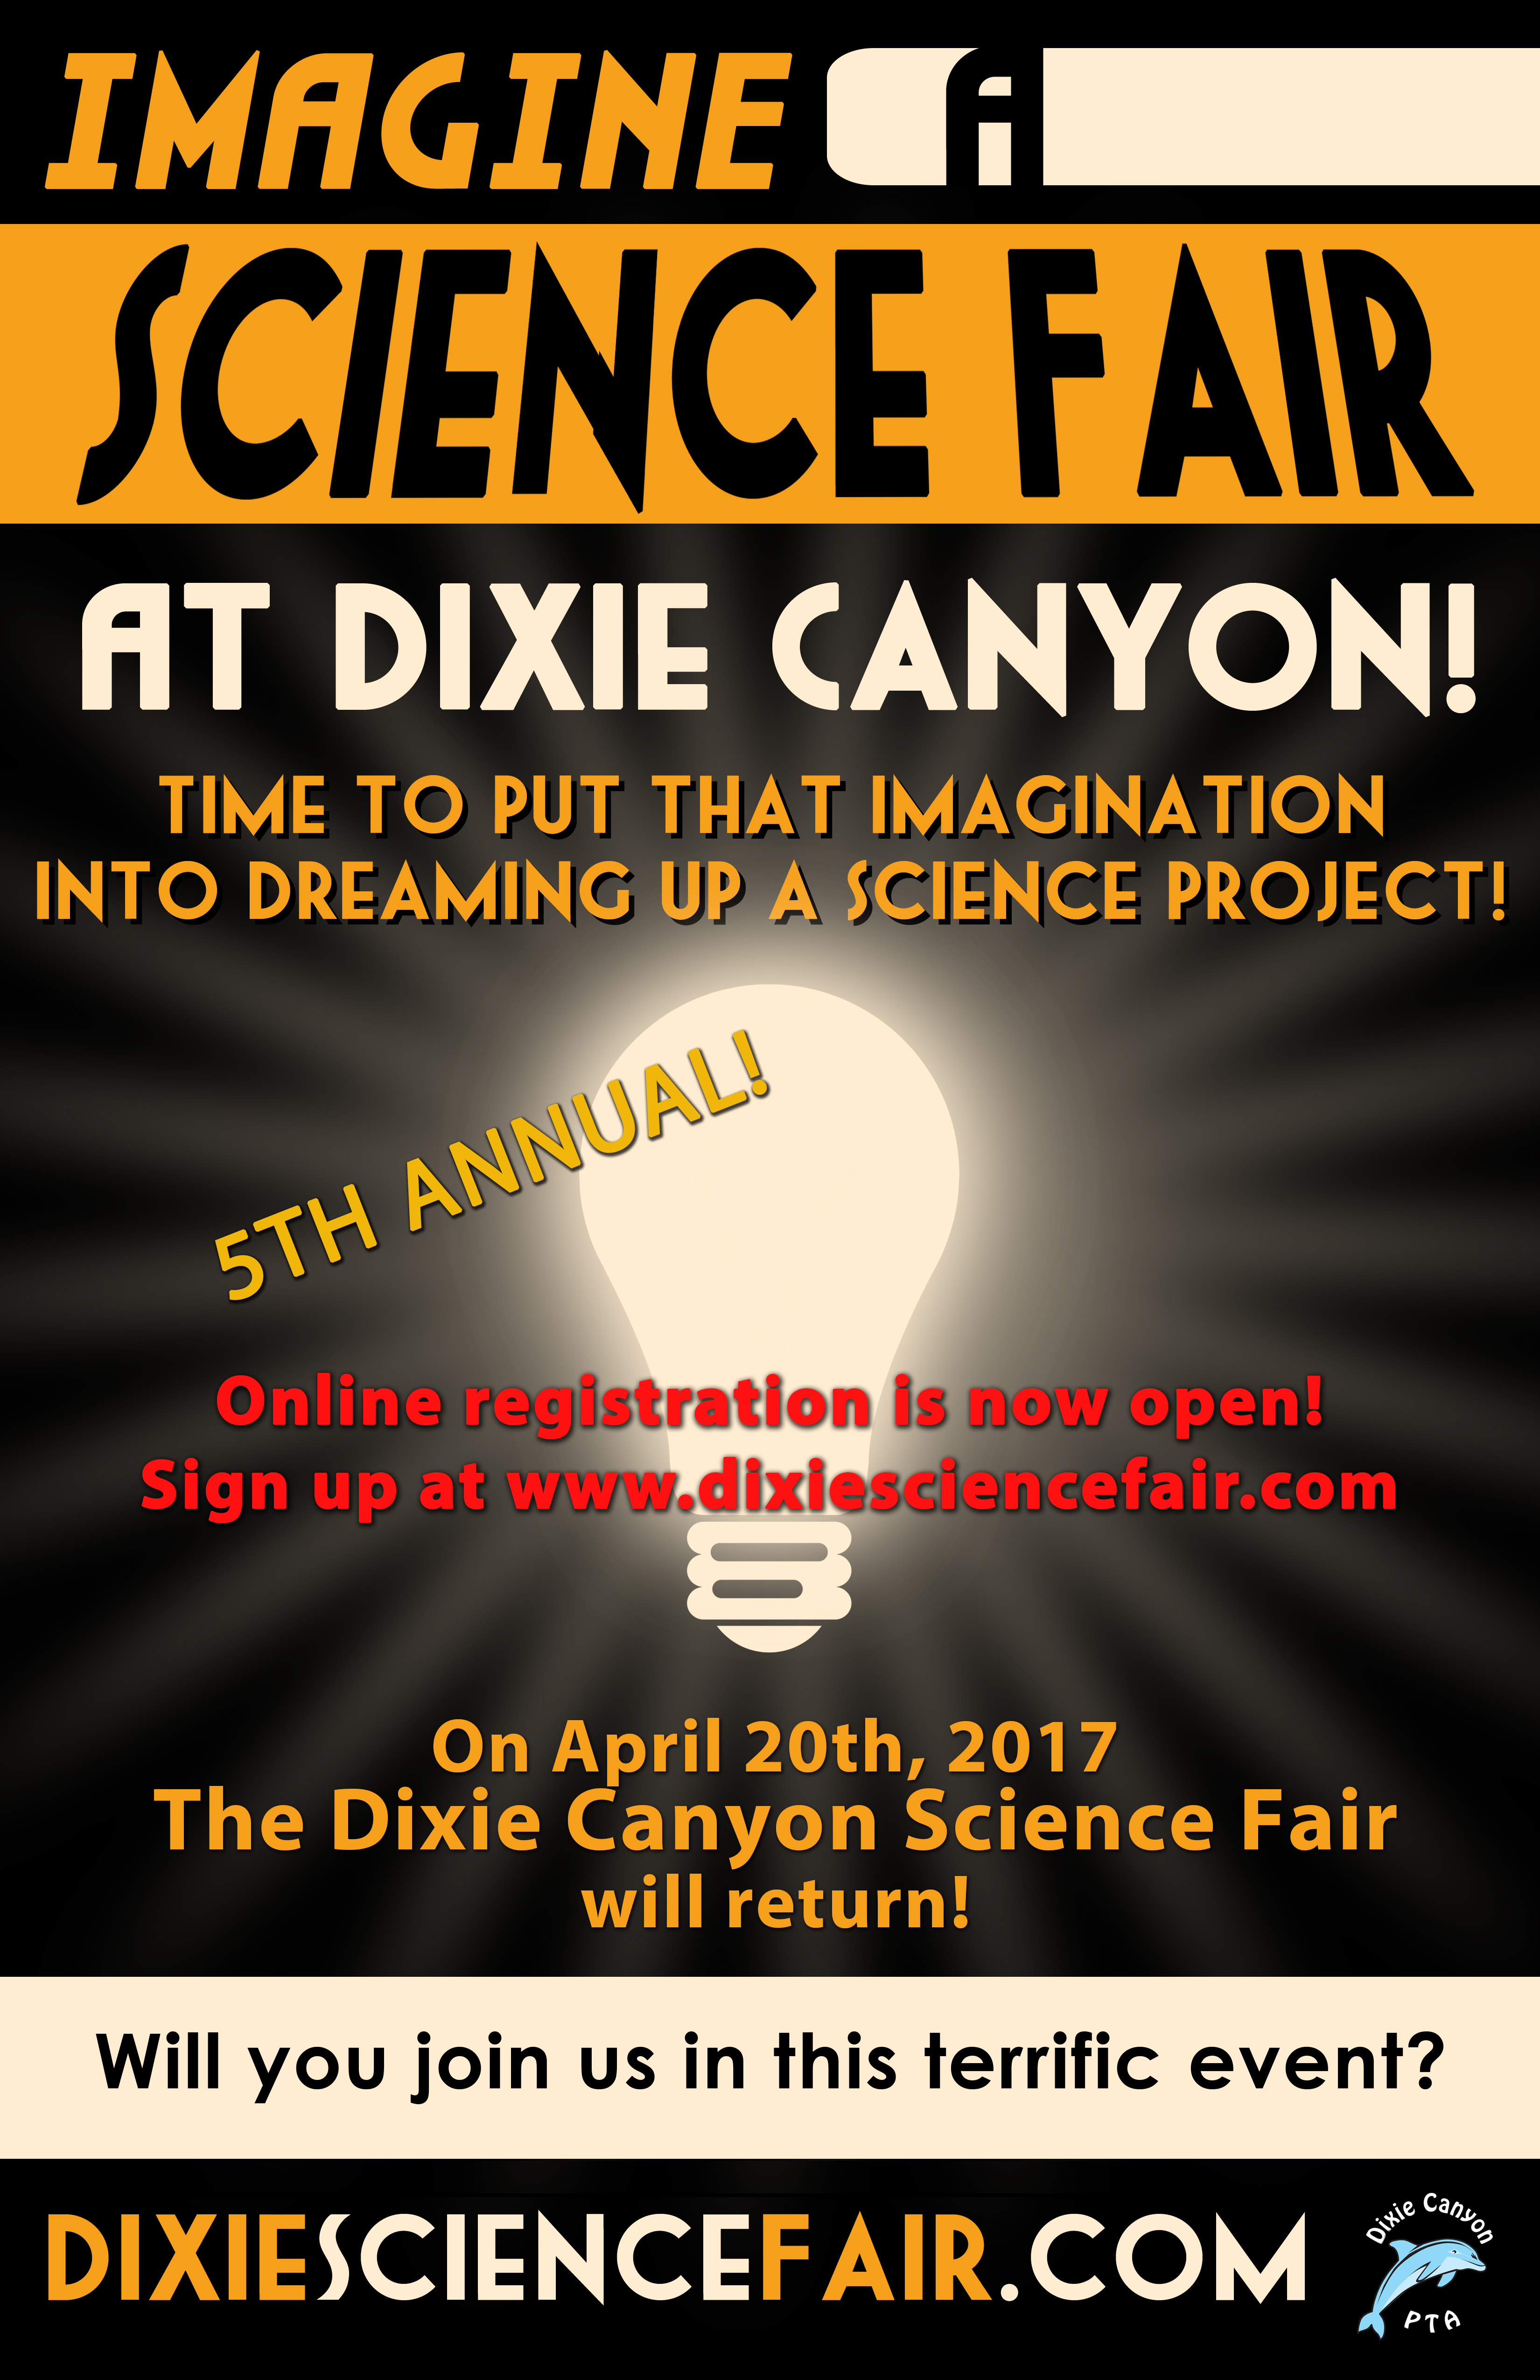 ScienceFair 2017 Registration.psd